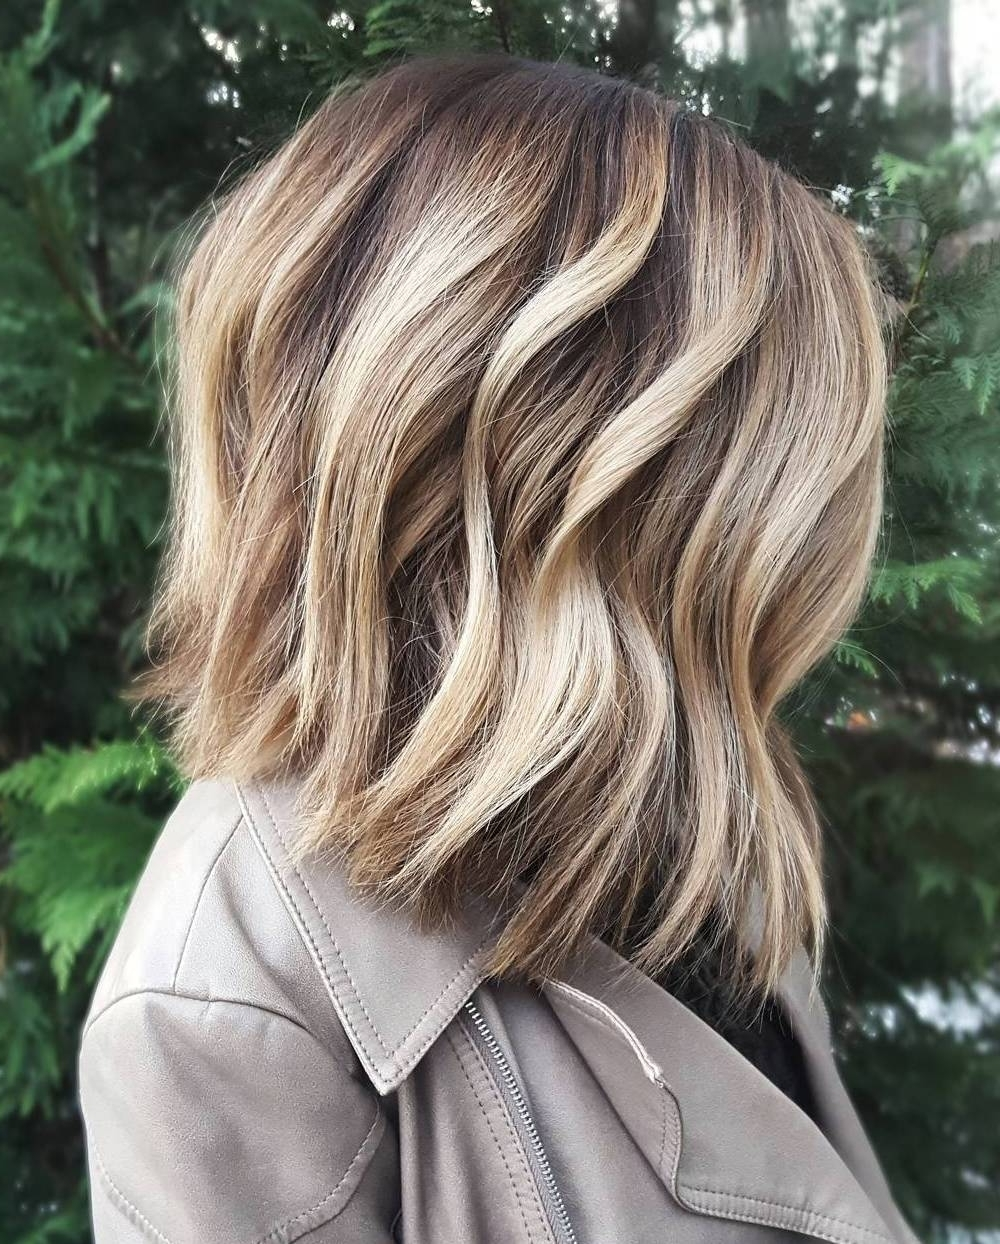 Trendy Sunkissed Long Locks Blonde Hairstyles Pertaining To 20 Dirty Blonde Hair Ideas That Work On Everyone (View 17 of 20)